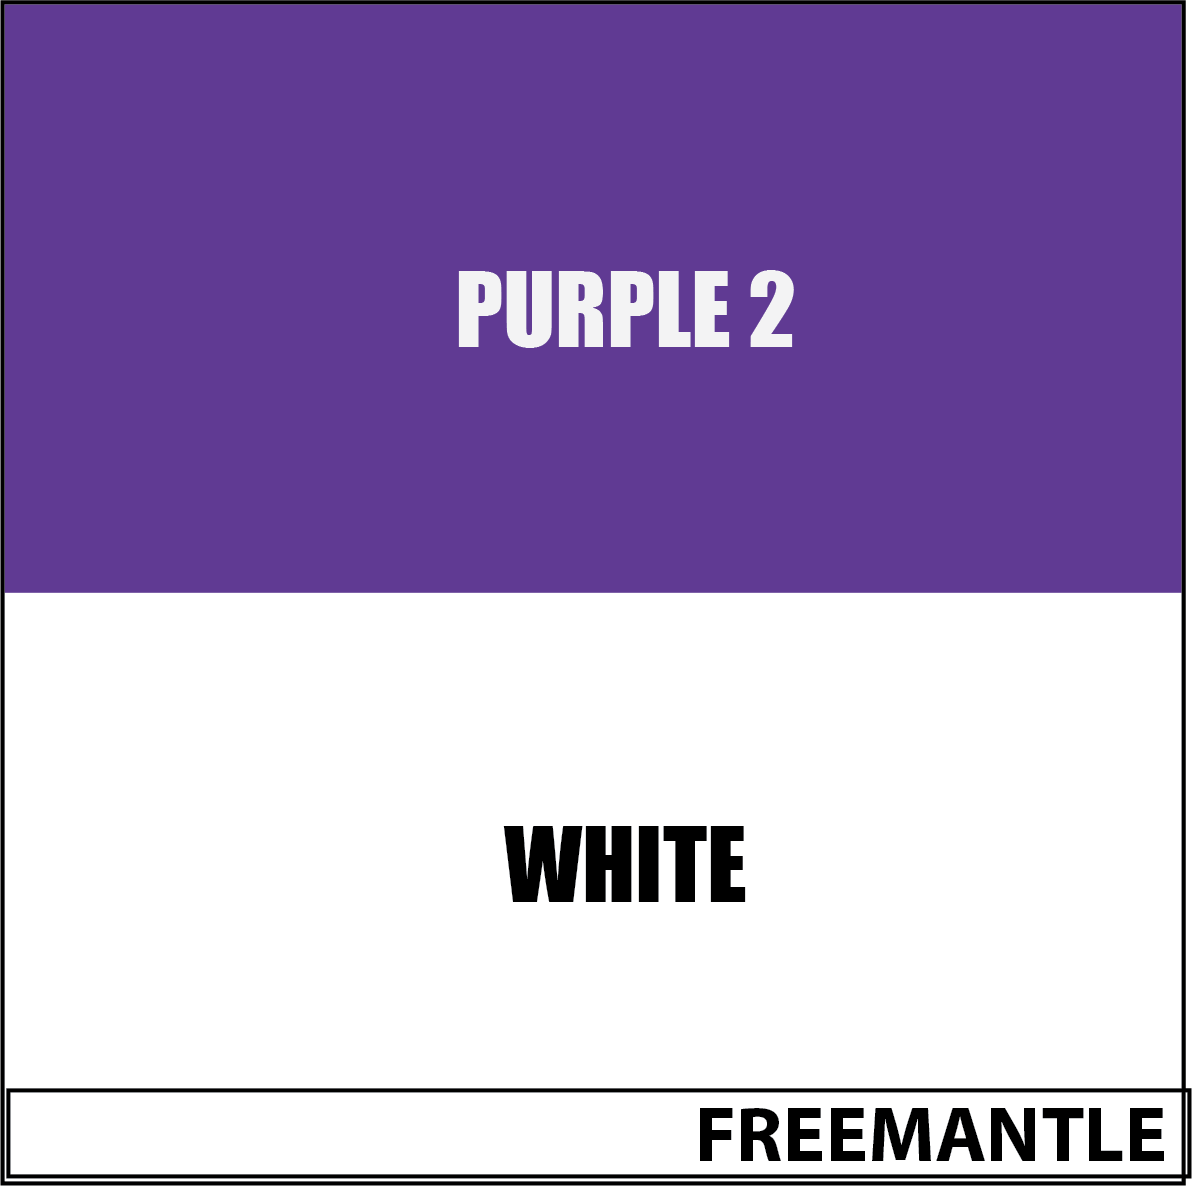 12ML_SuberbColours_Freemantle.png